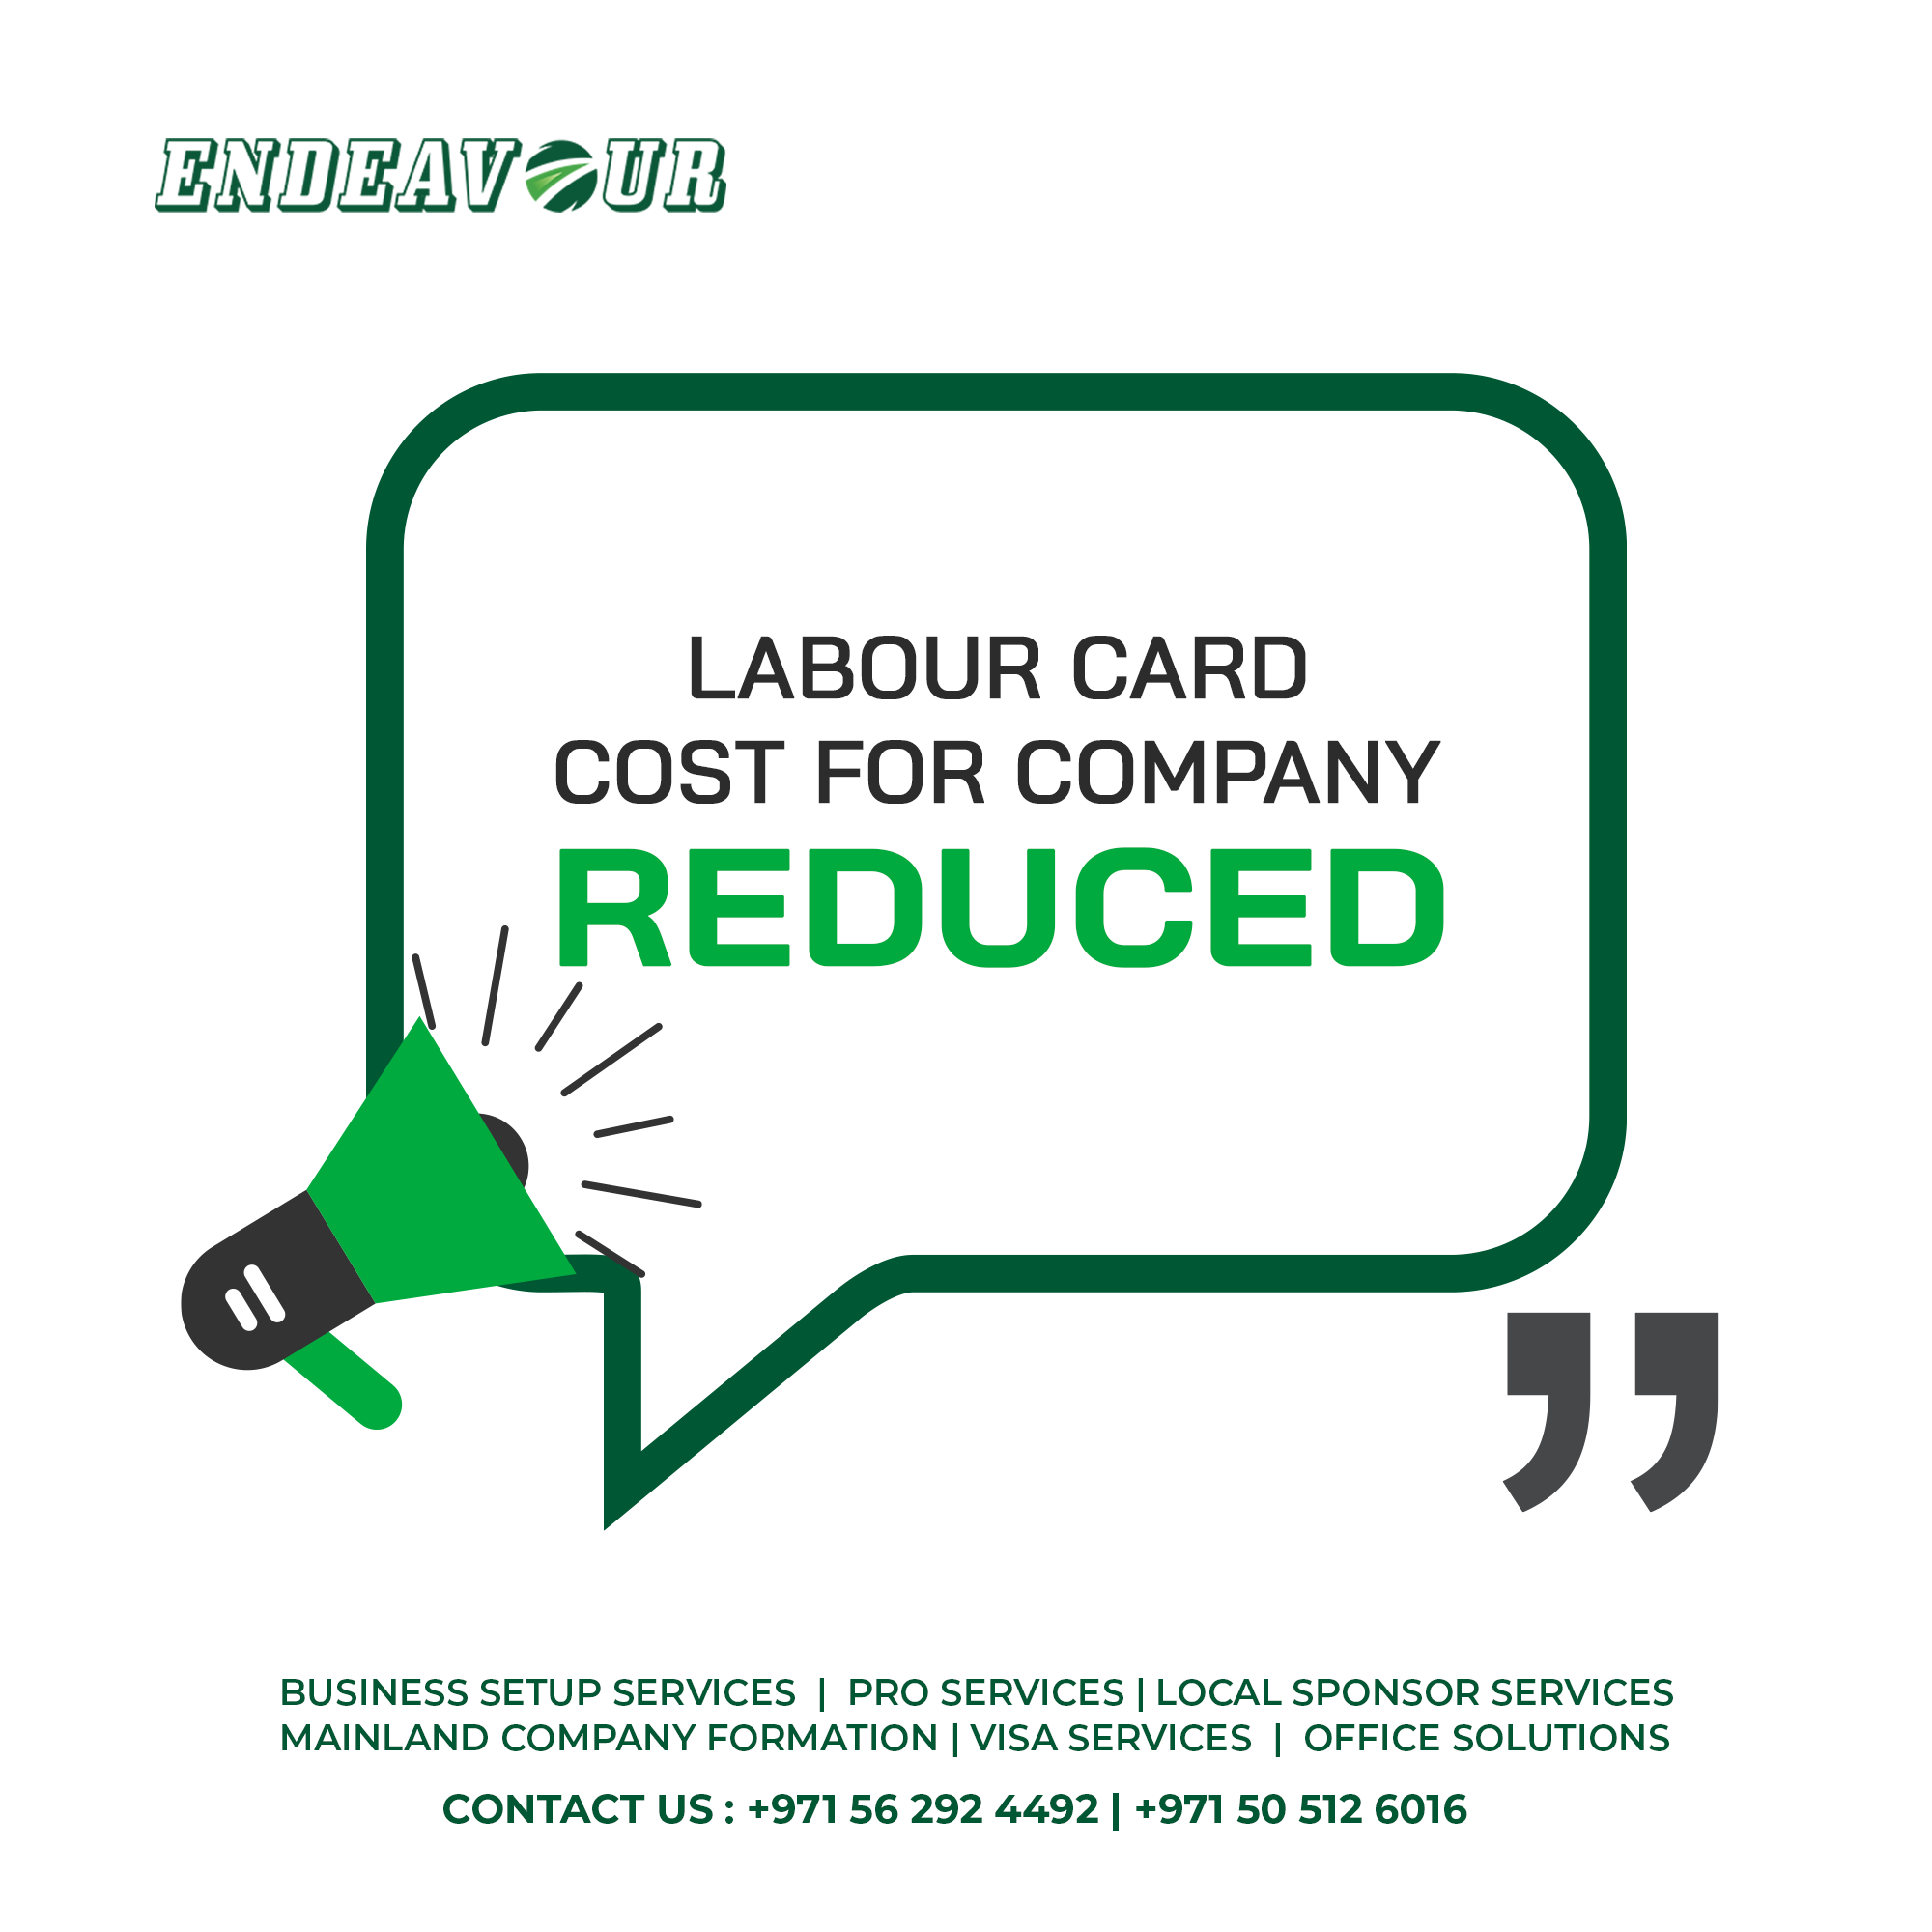 Labour Card Cost For Company Reduced Cards Office Solutions Solutions